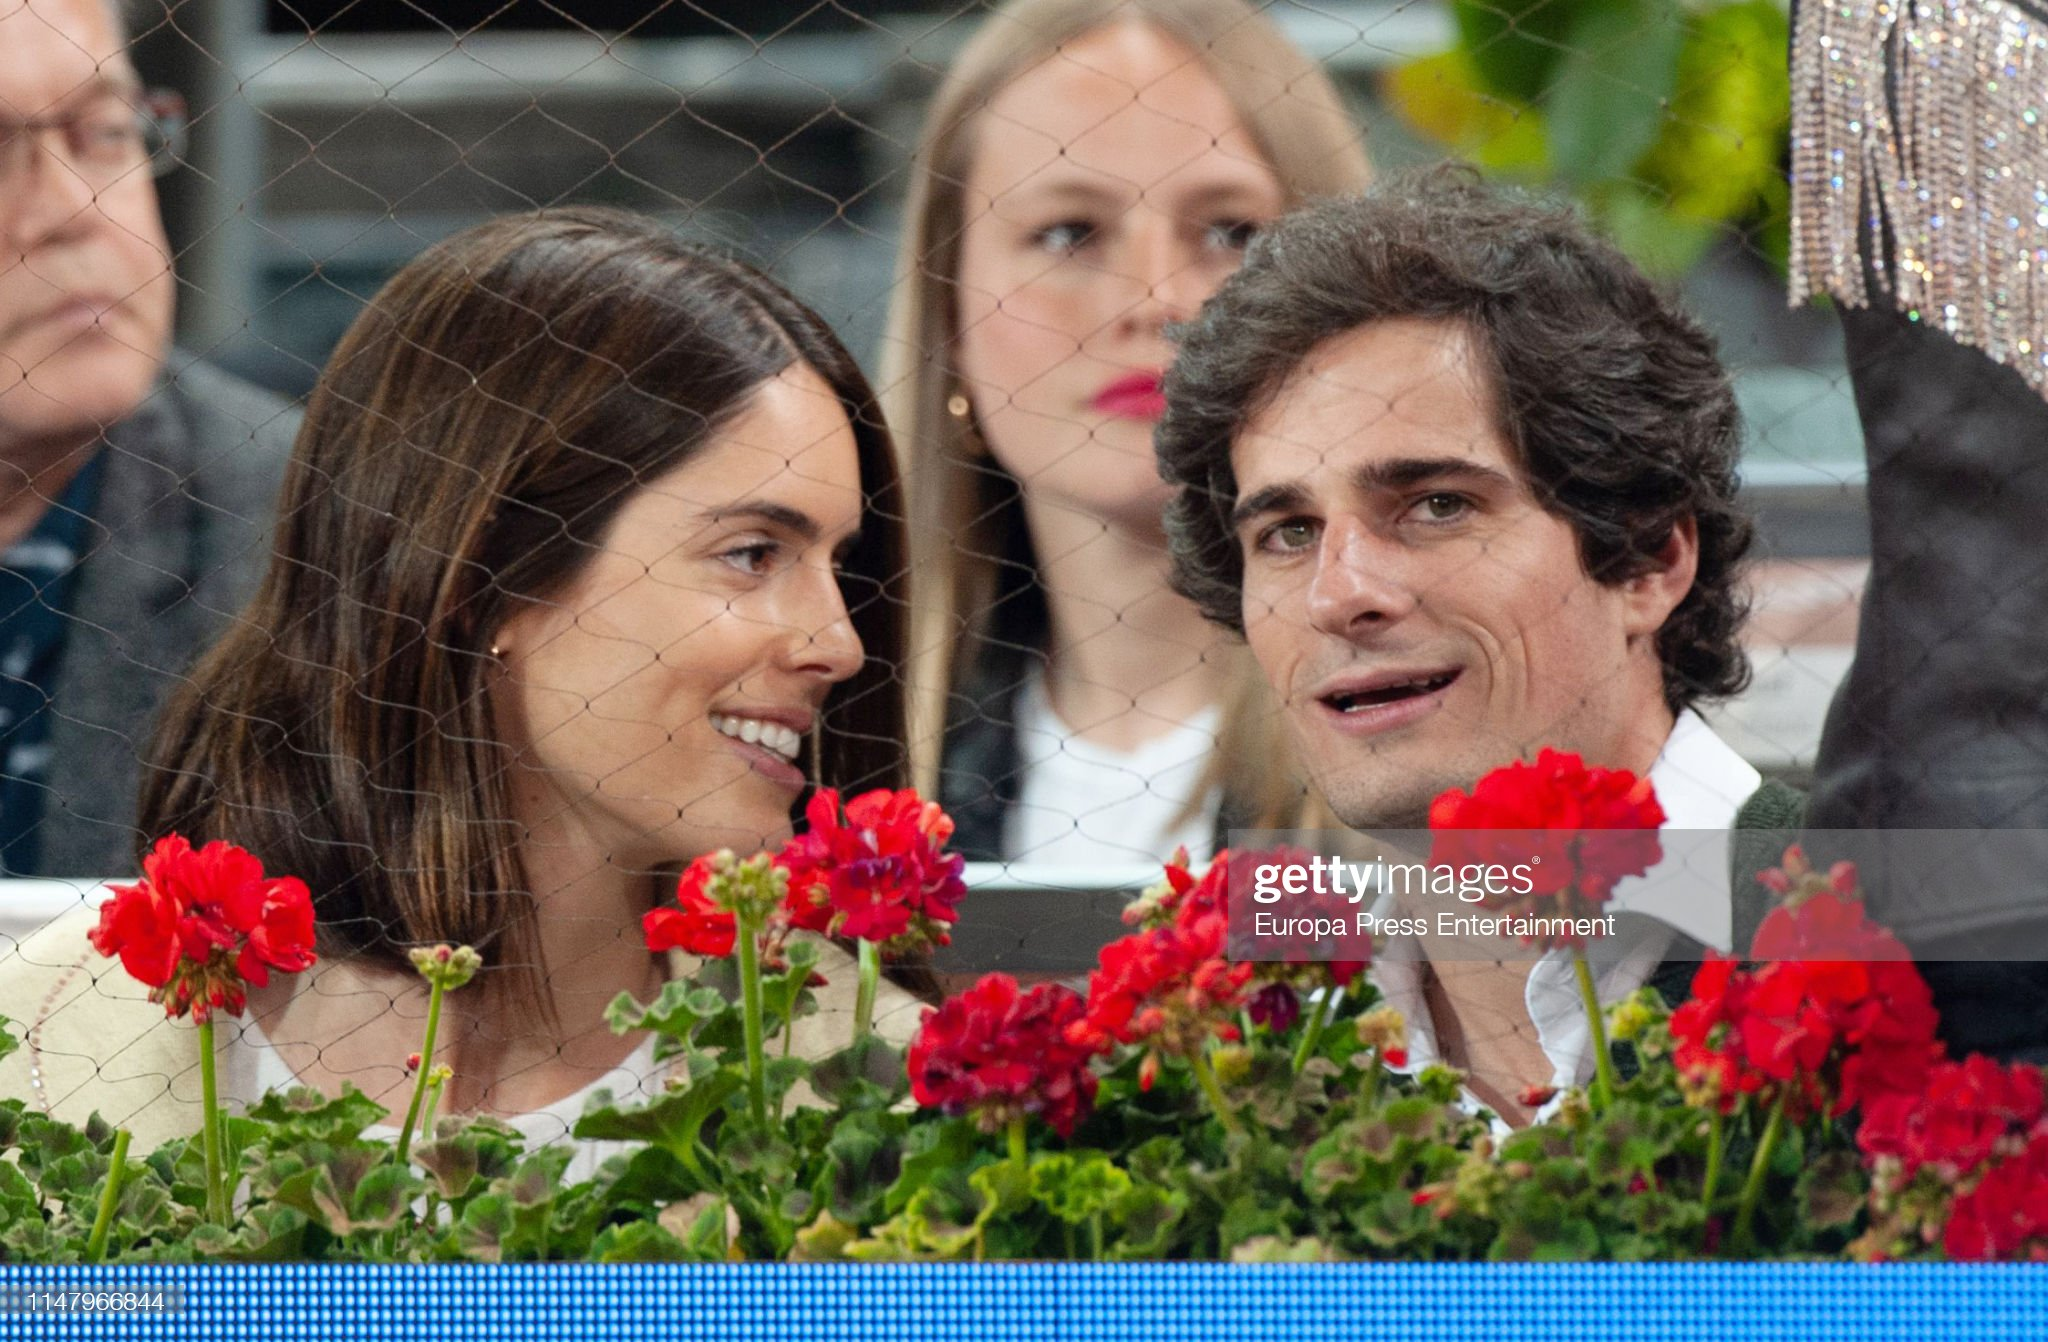 https://media.gettyimages.com/photos/sofia-palazuelo-and-fernando-fitzjames-stuart-y-sols-attend-mutua-picture-id1147966844?s=2048x2048